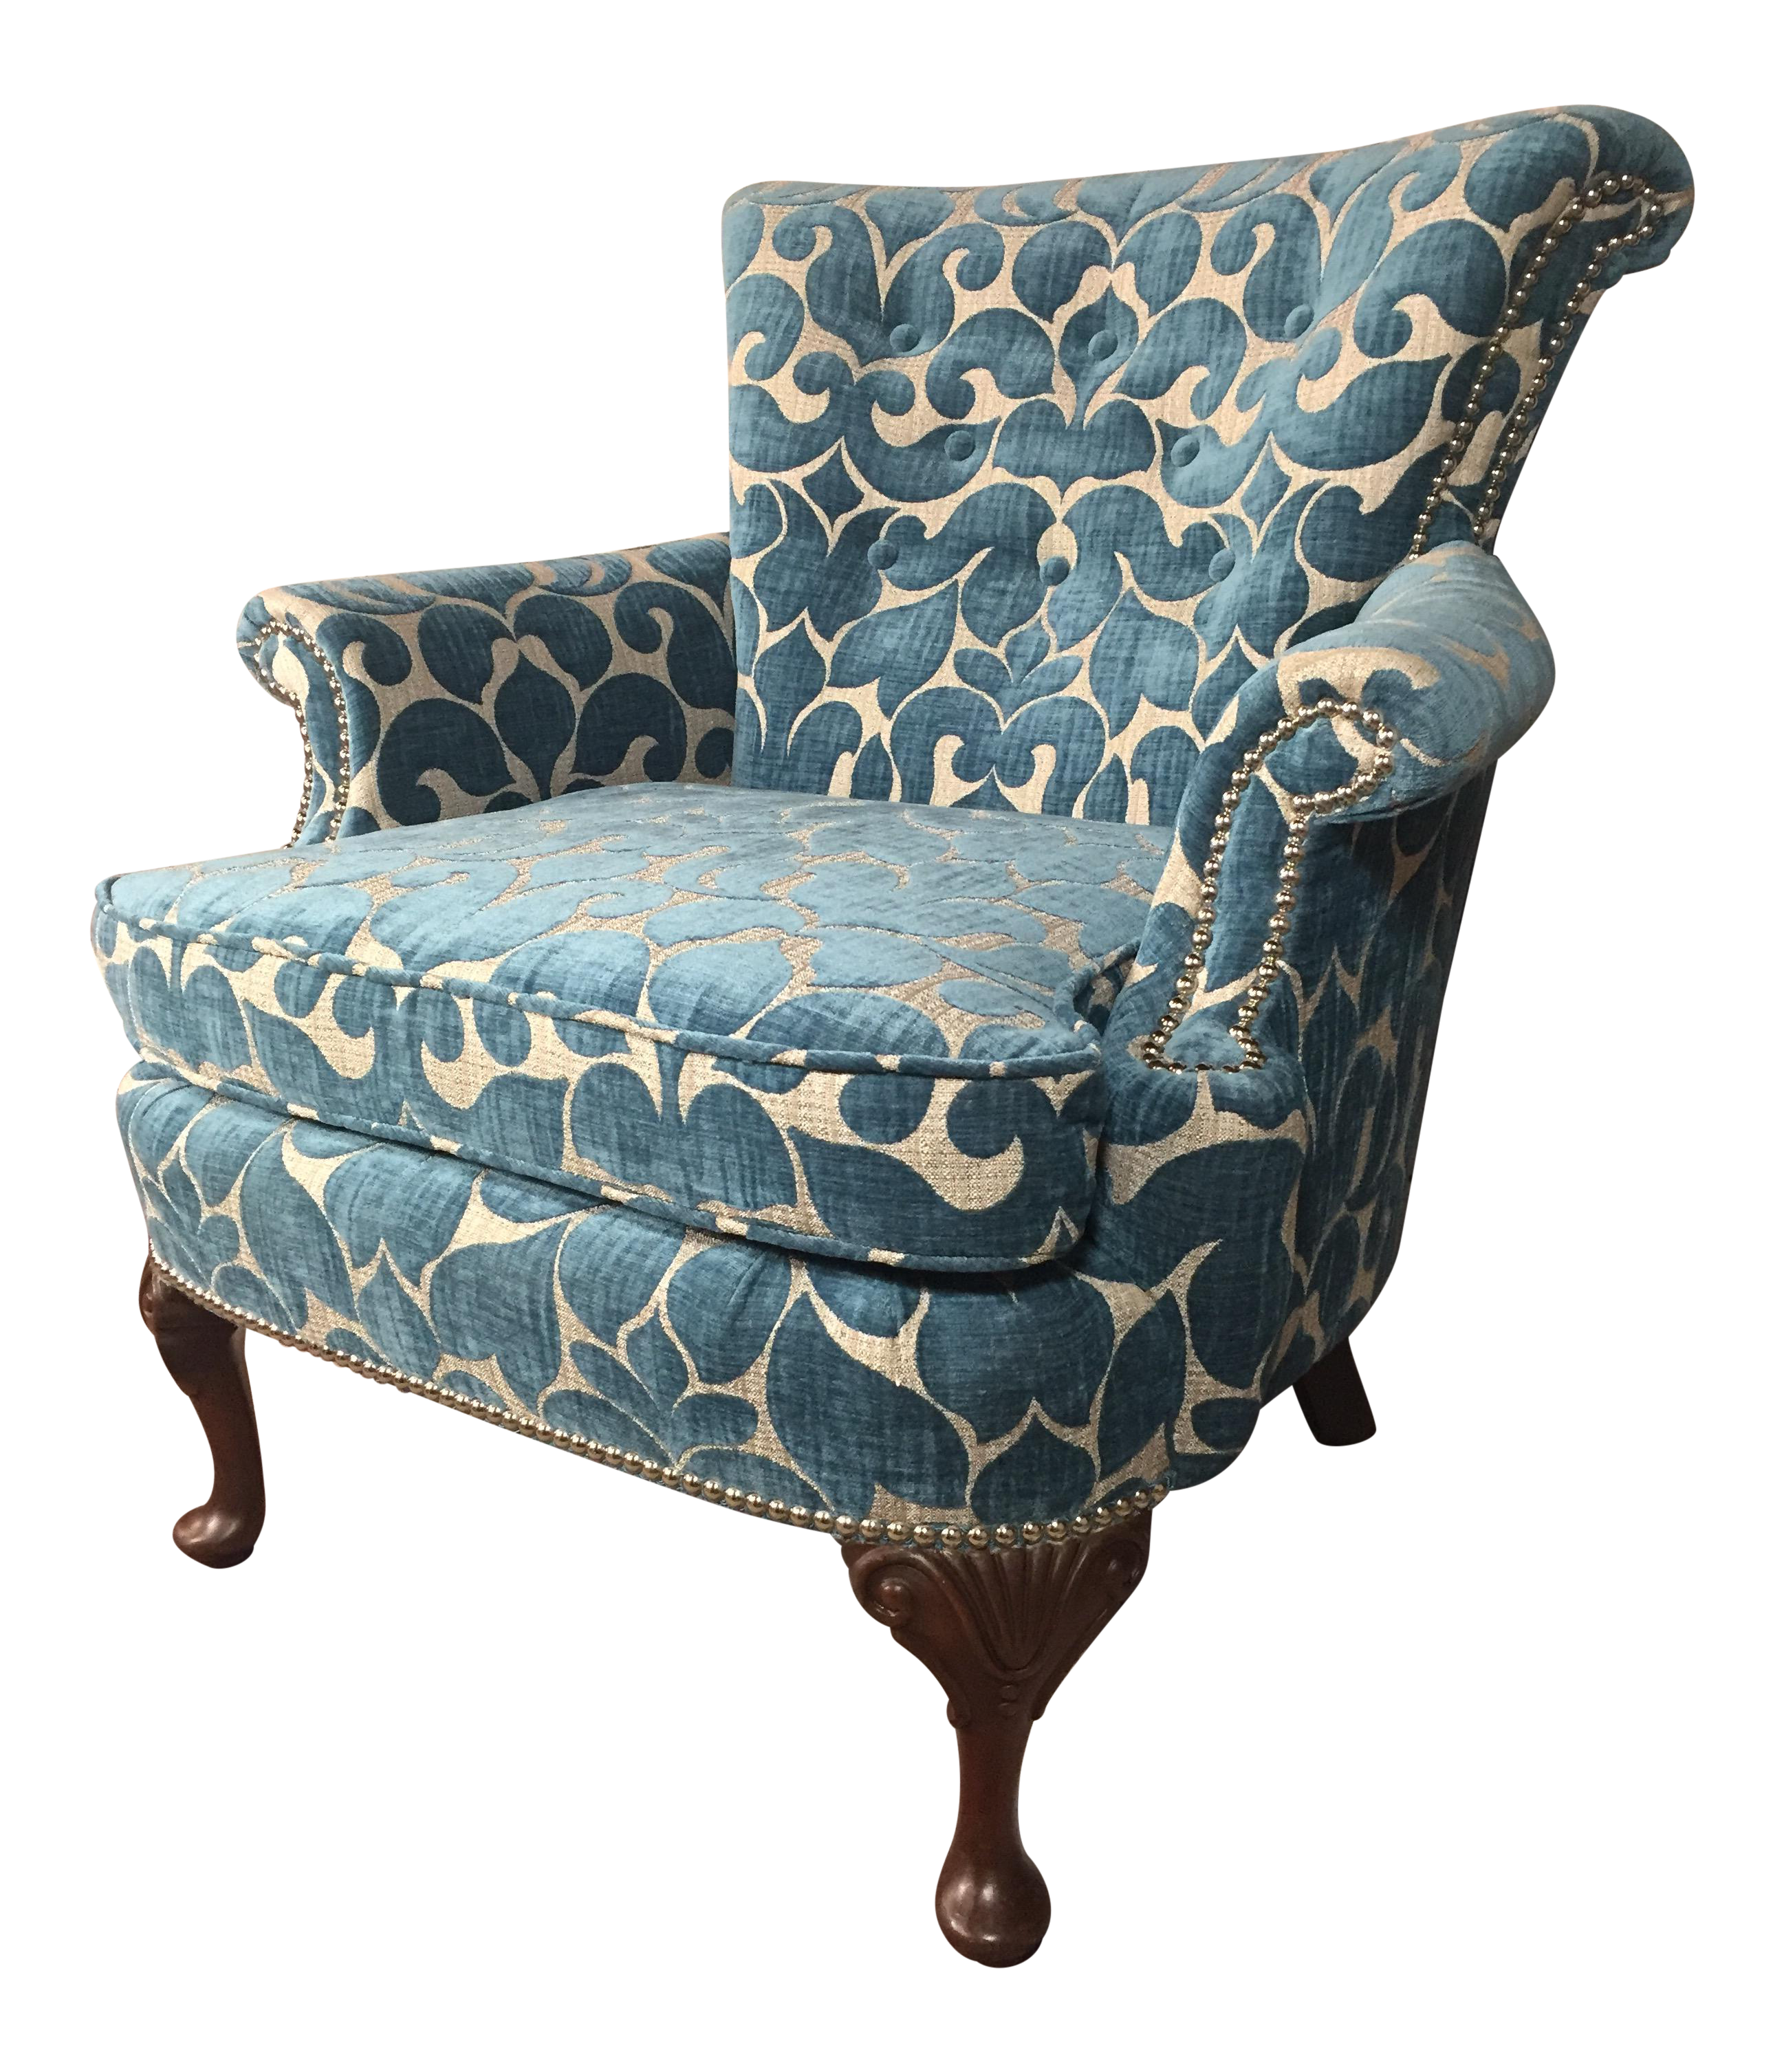 Velvet Teal Nailhead Studded Chair Chairish